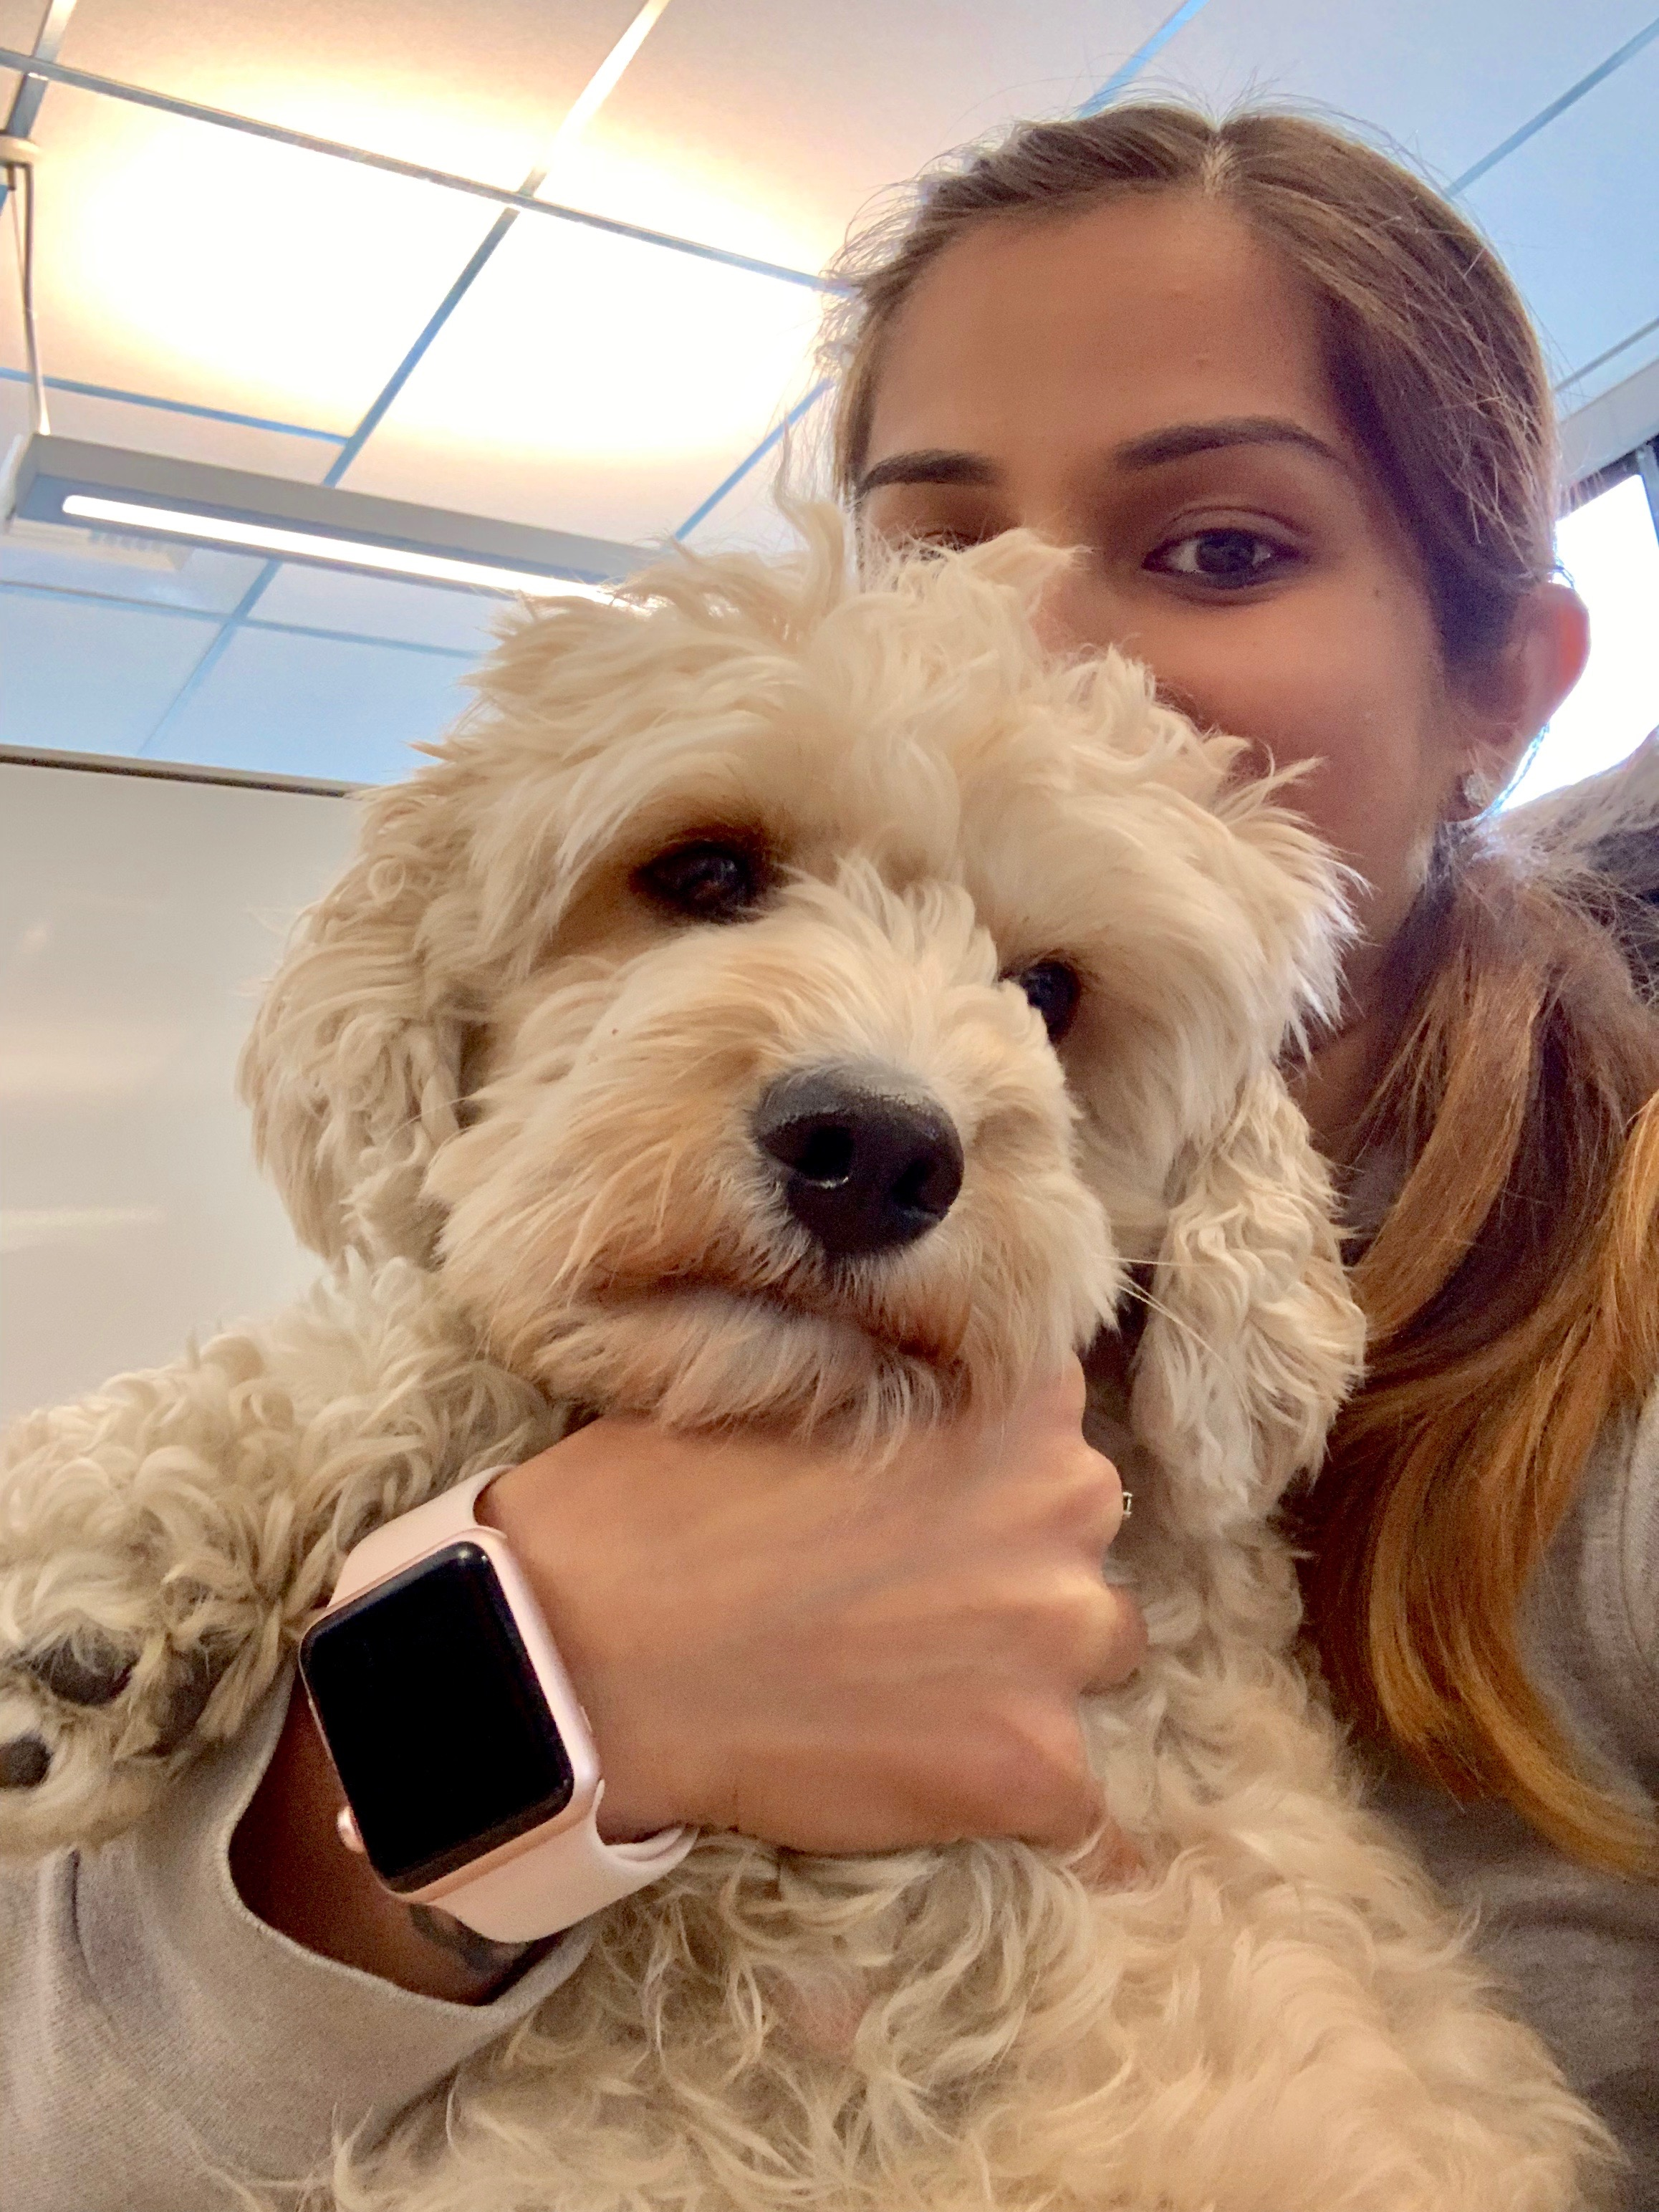 dog travel companion outdoors fun airplane anxiety stress selfies